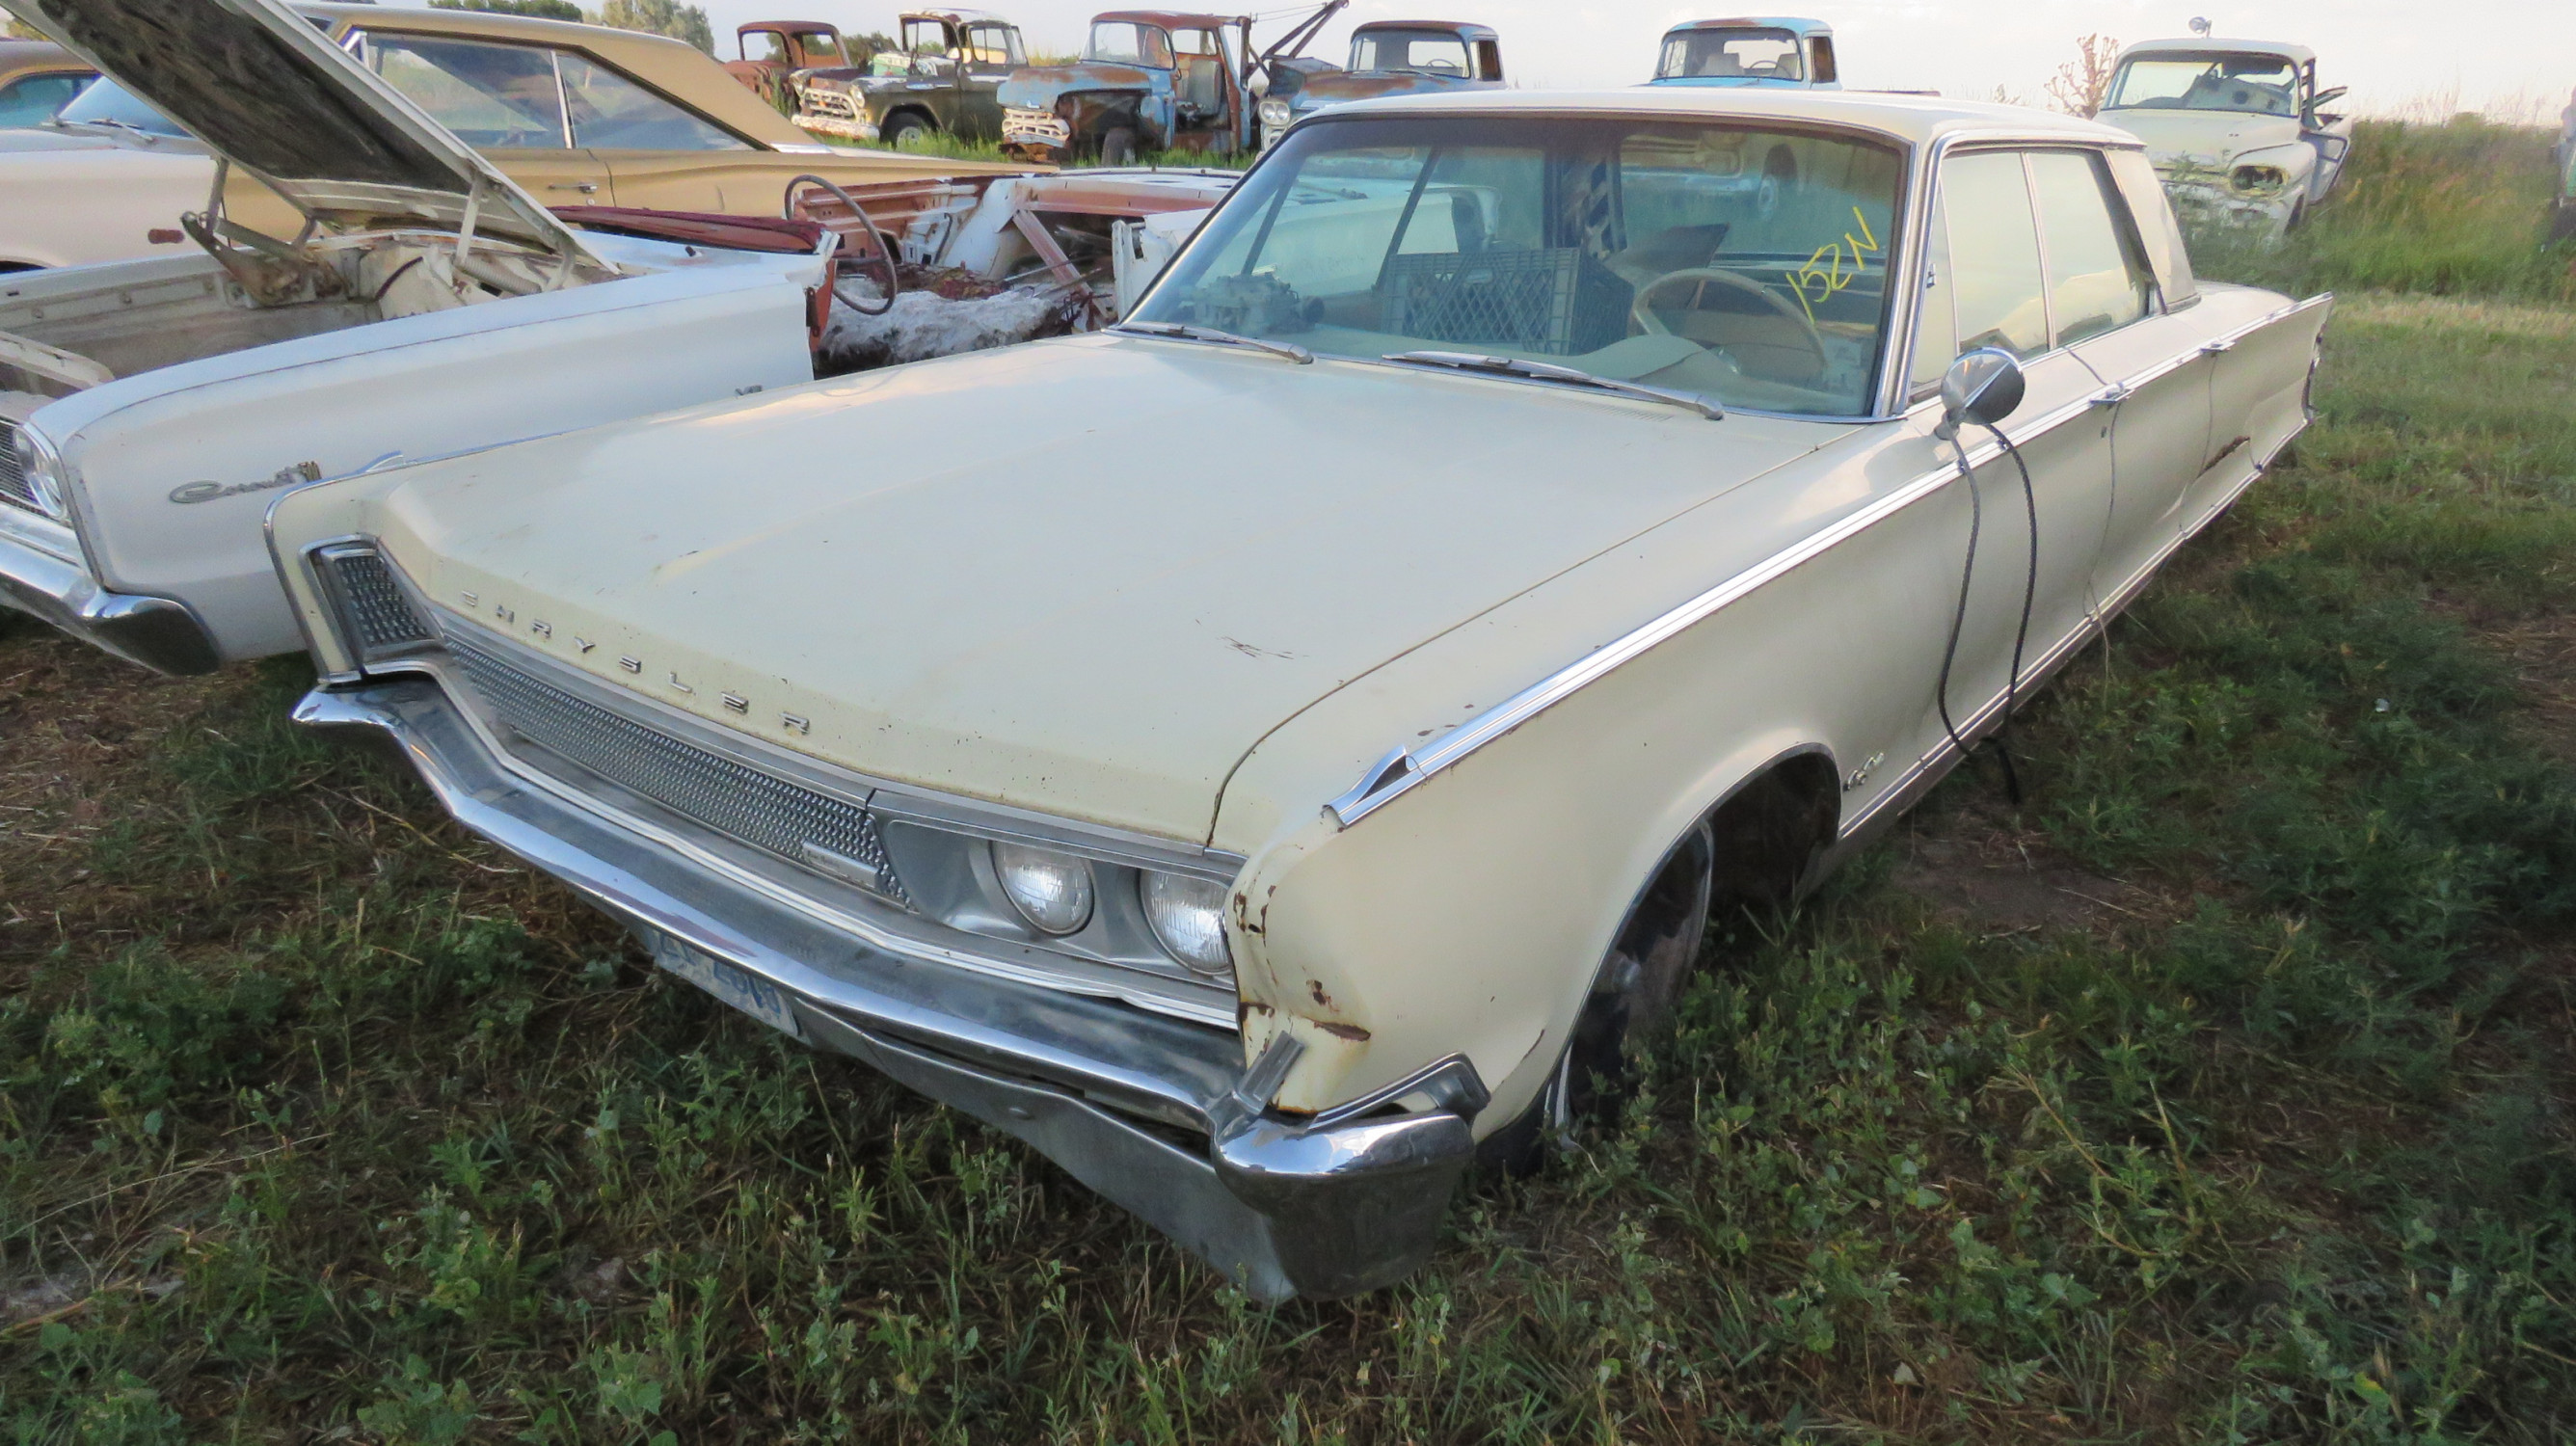 CHRYSLER NEW YORKER FOR DERBY OR PARTS - Image 1